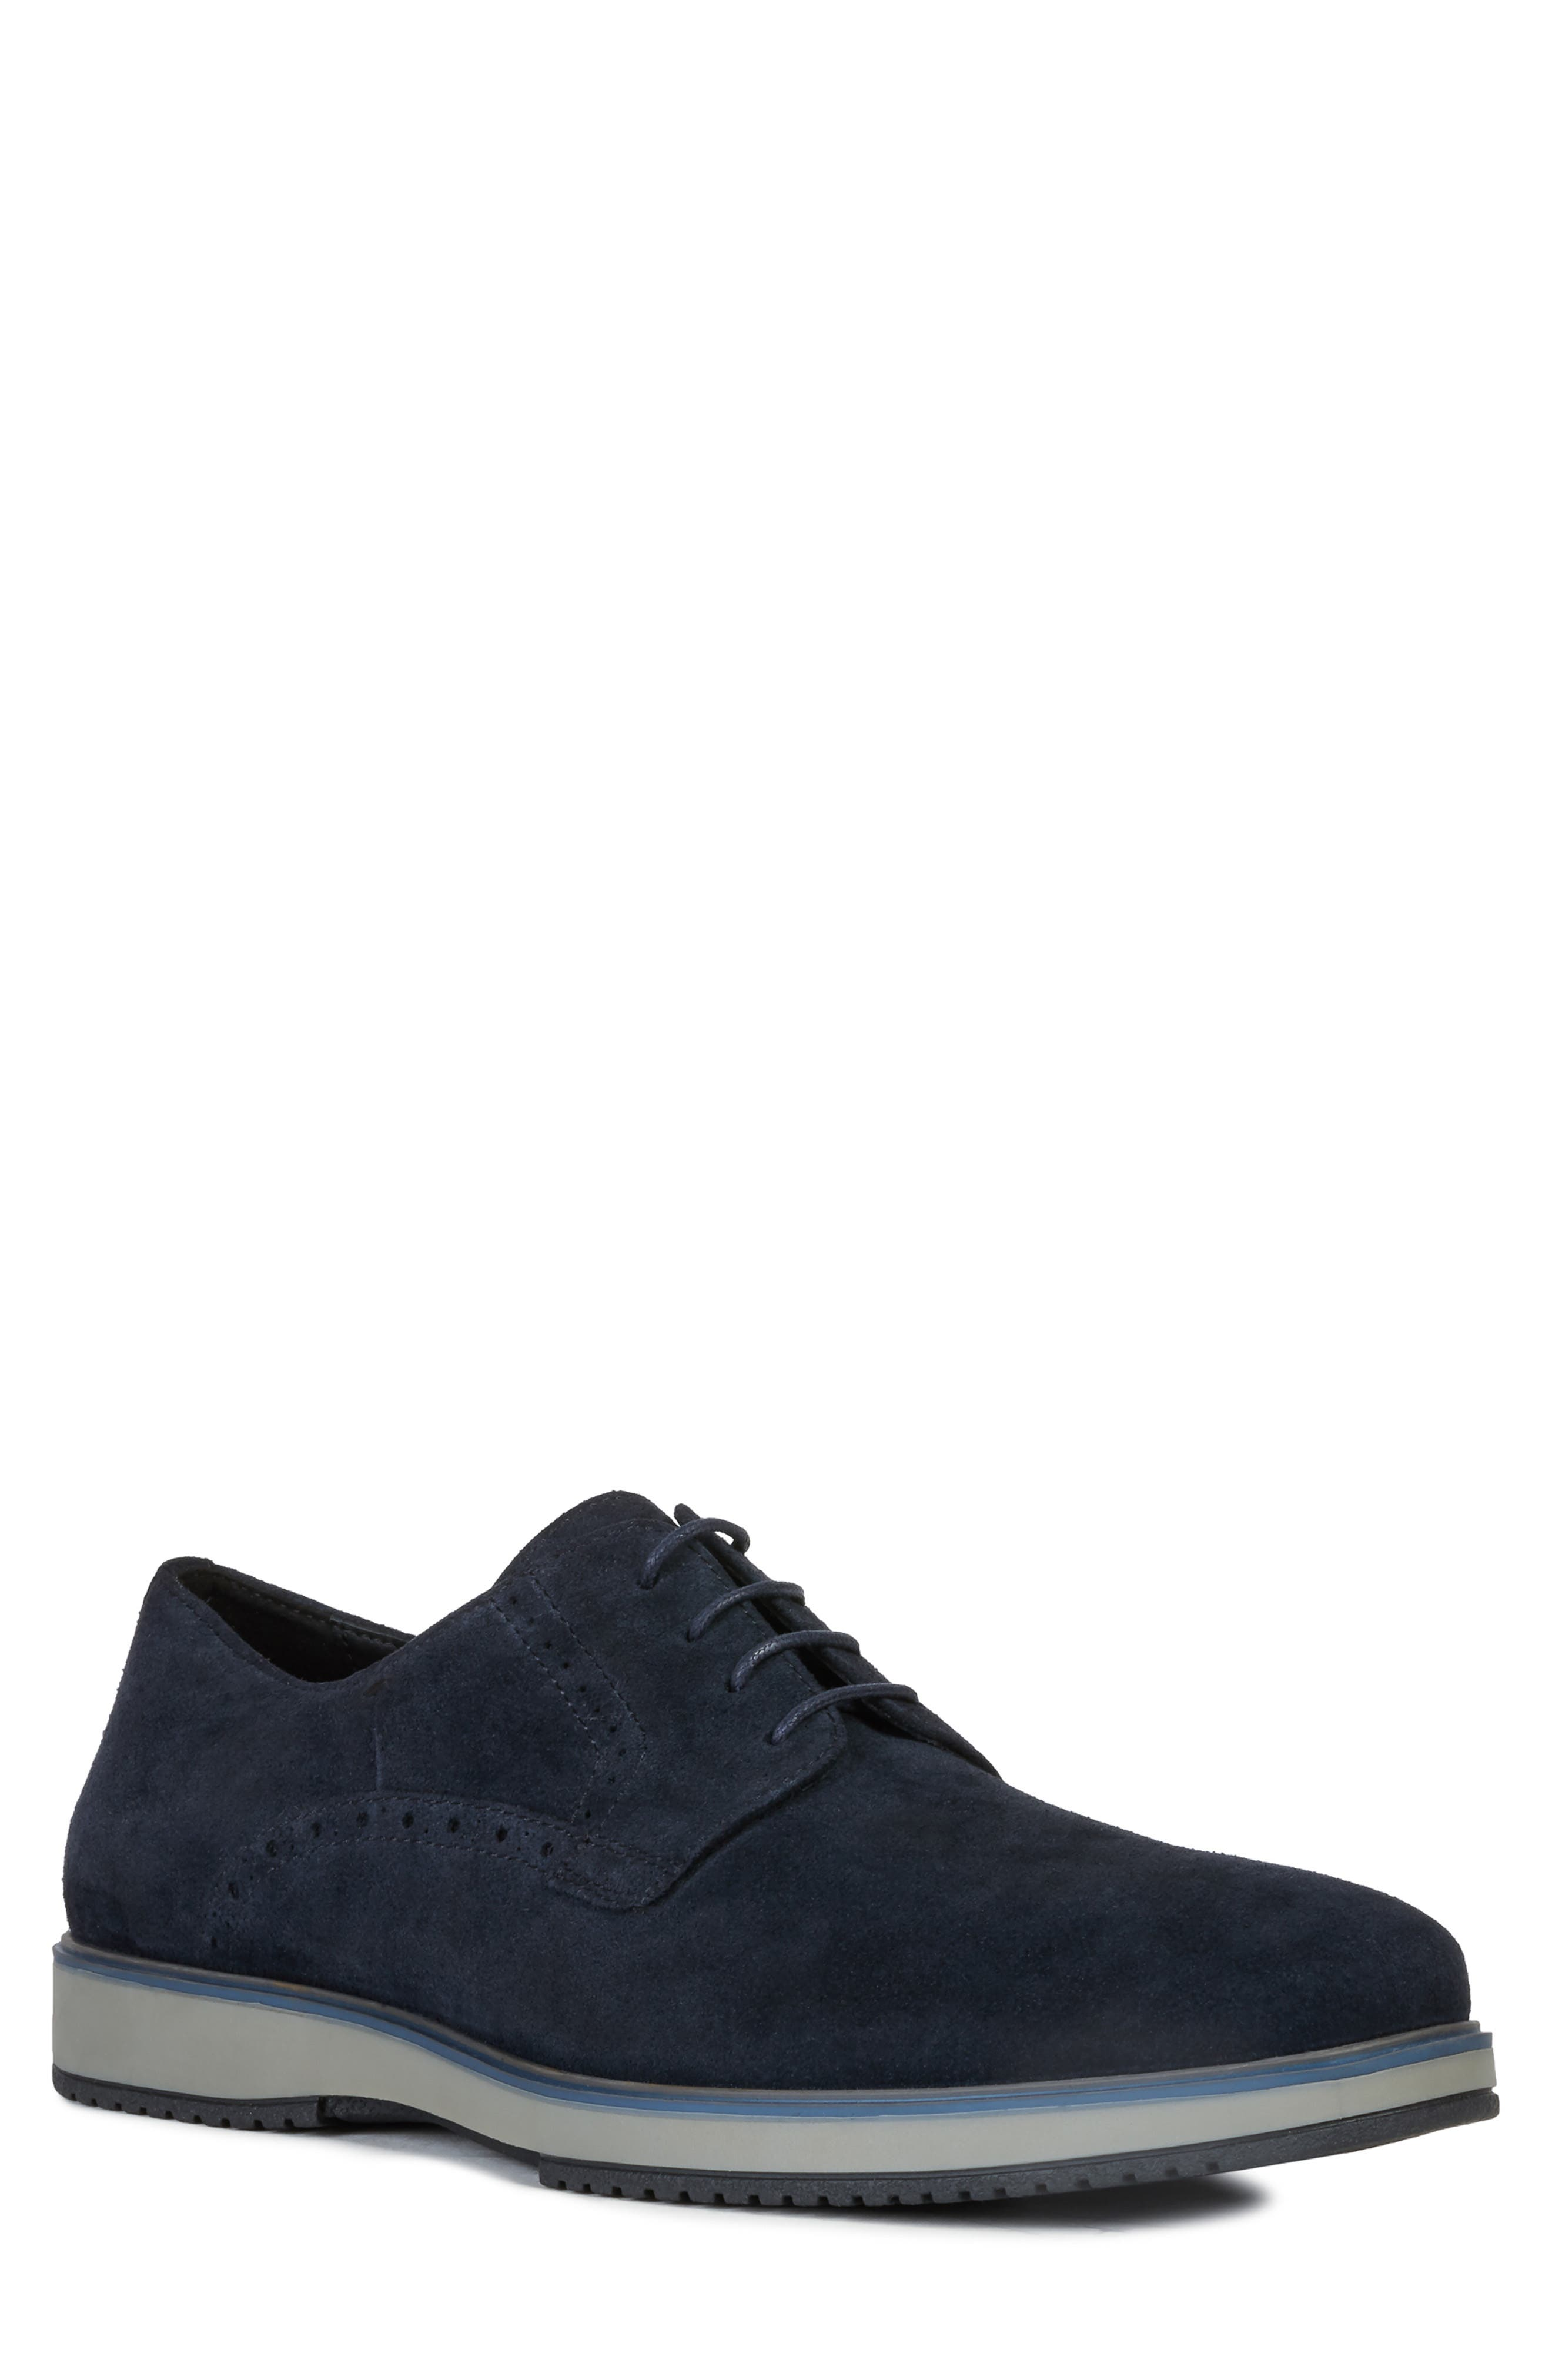 Geox Mens Shoes